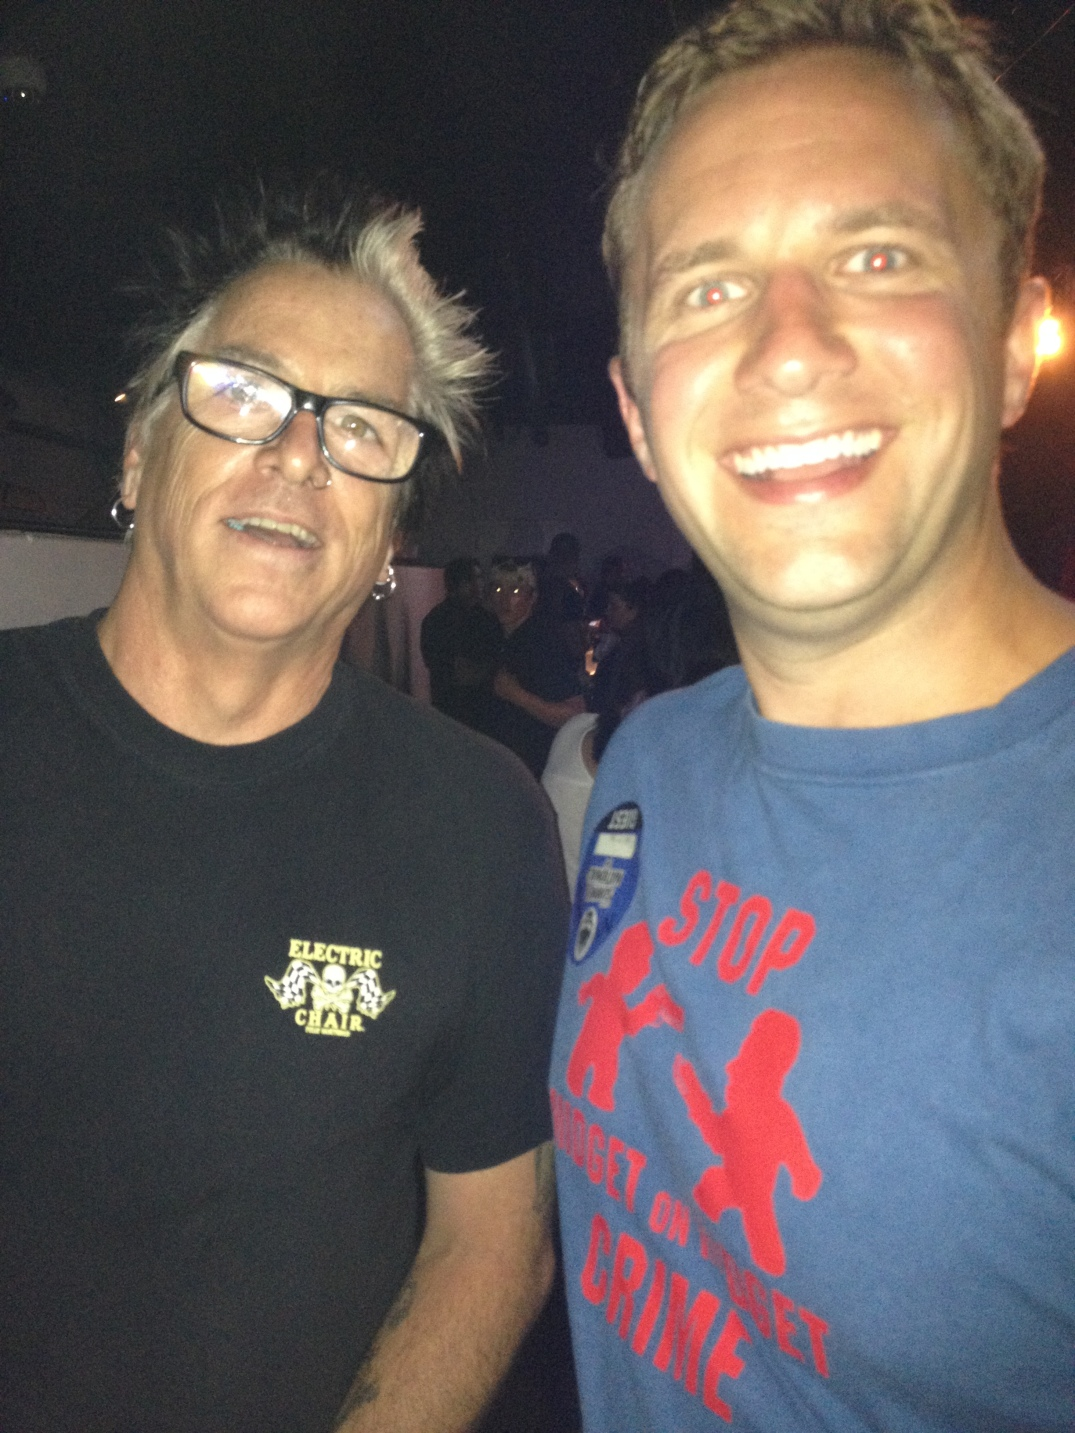 I met Noodles outside of Niagra bar on the LES a few years ago. Couldn't have been nicer, huge comedy fan. Every time the Offspring come to town, I check them out and usually get to have a beer with him. They say don't meet your heroes because you'll be disappointed. Not in this case, he's one of the nicest celebs I've ever met